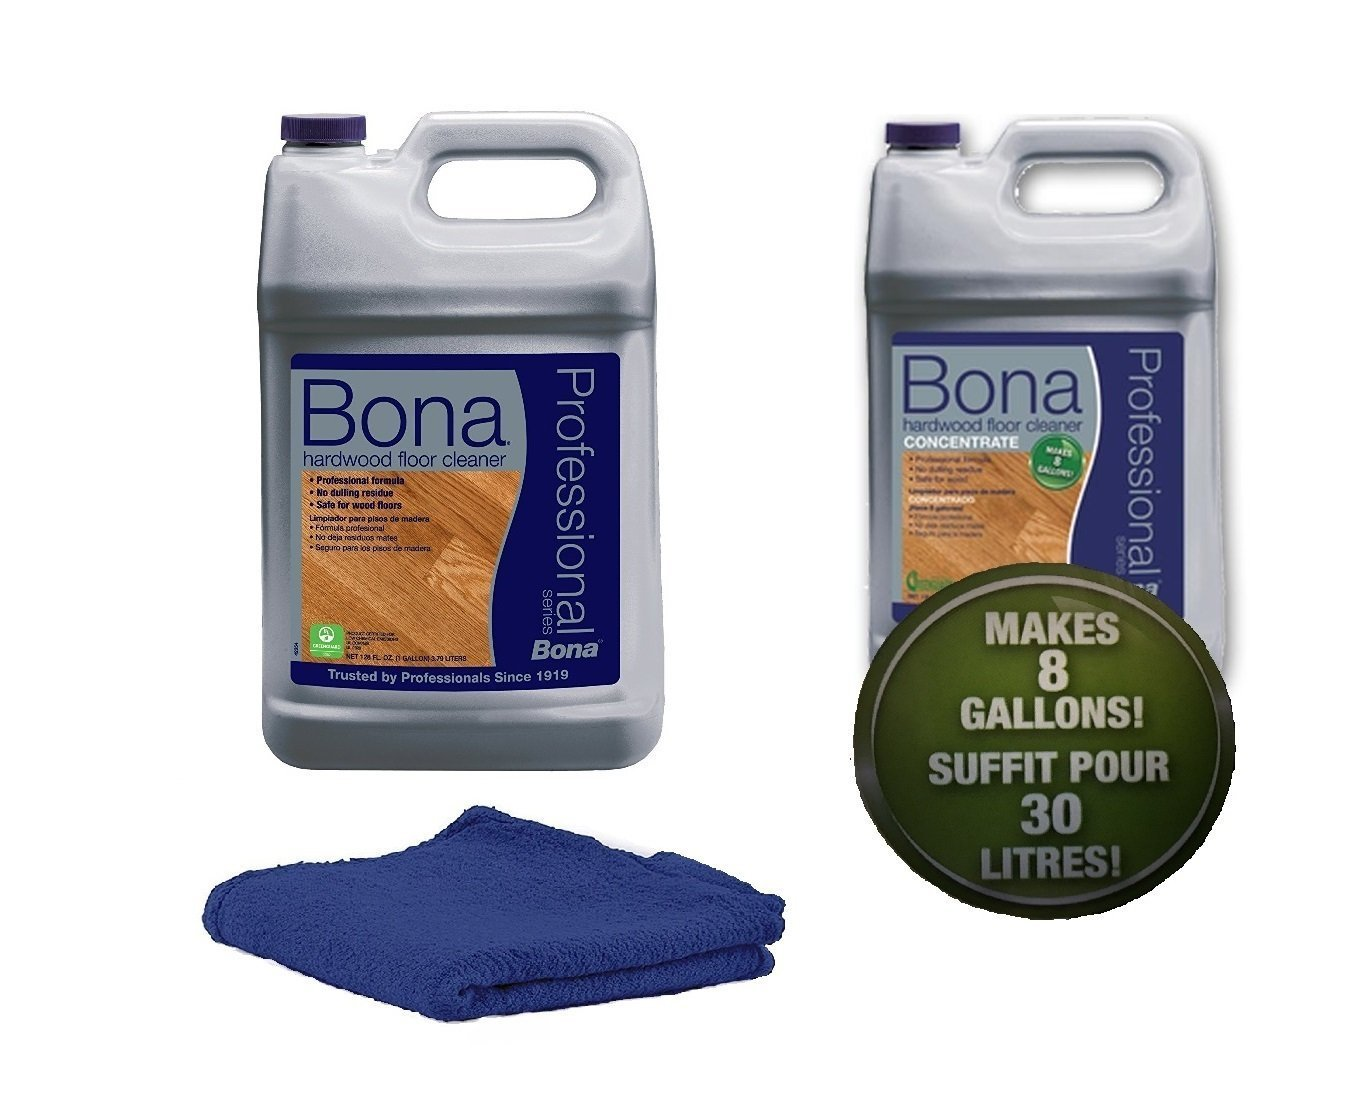 Bona Pro Series Hardwood Floor Cleaner Refill with Concentrate (makes 8 gallons)